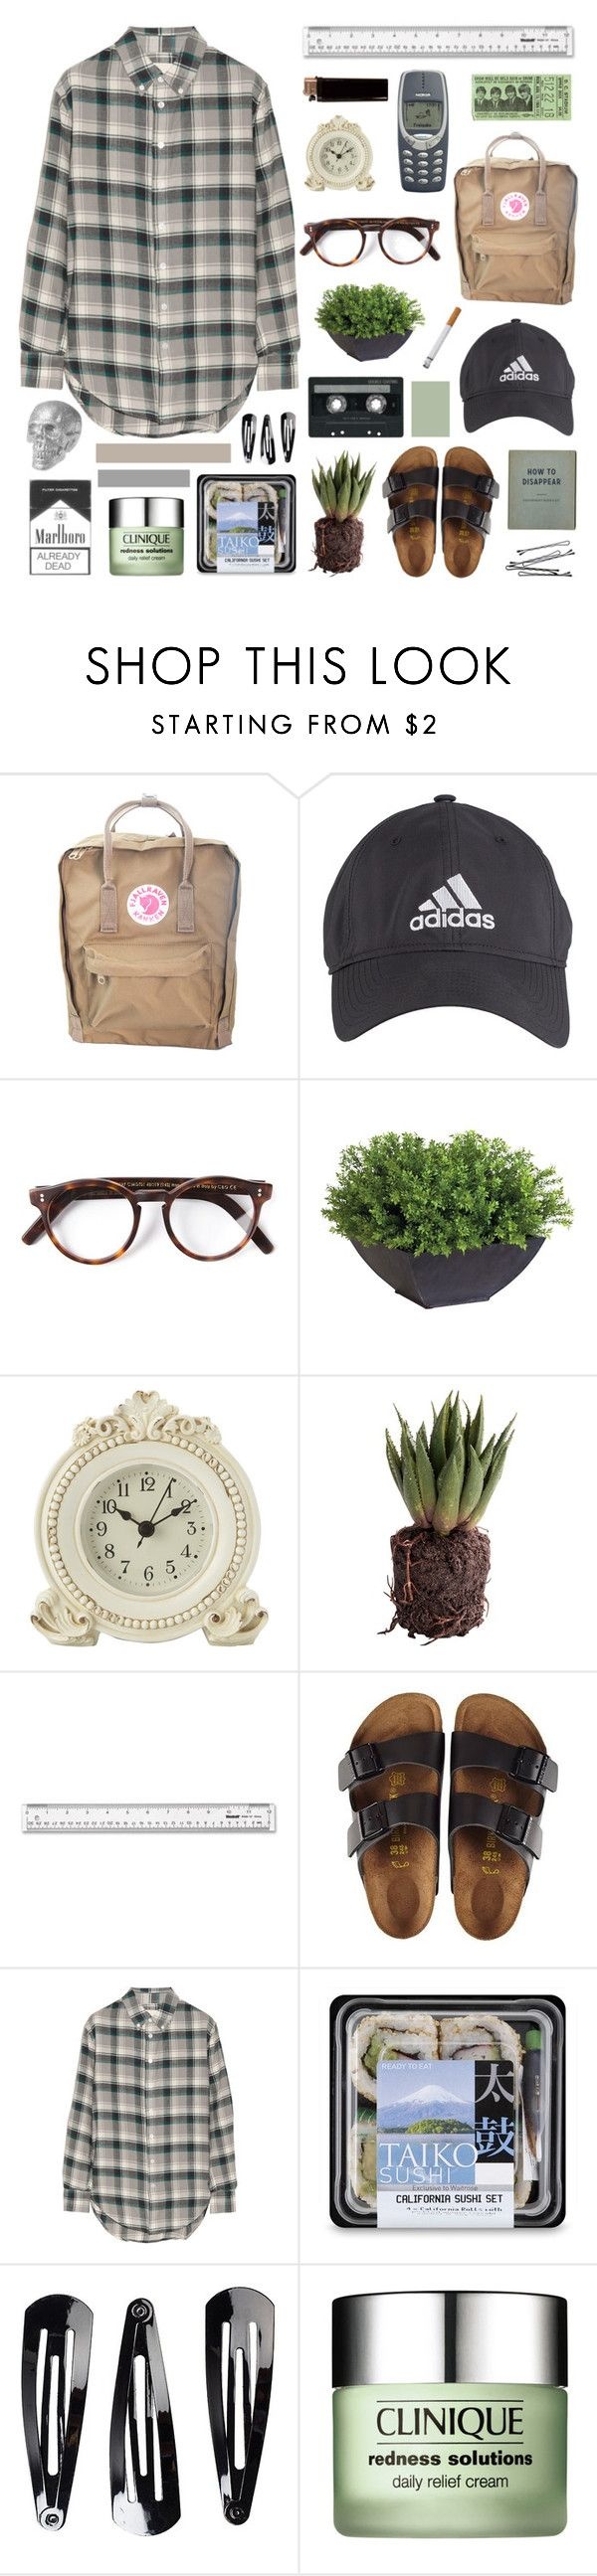 """""""uncover / zara larsson"""" by jpnefn ❤ liked on Polyvore featuring Fjällräven, adidas, Cutler and Gross, Ethan Allen, Laura Ashley, CASSETTE, Birkenstock, BOBBY, Band of Outsiders and NLY Accessories"""